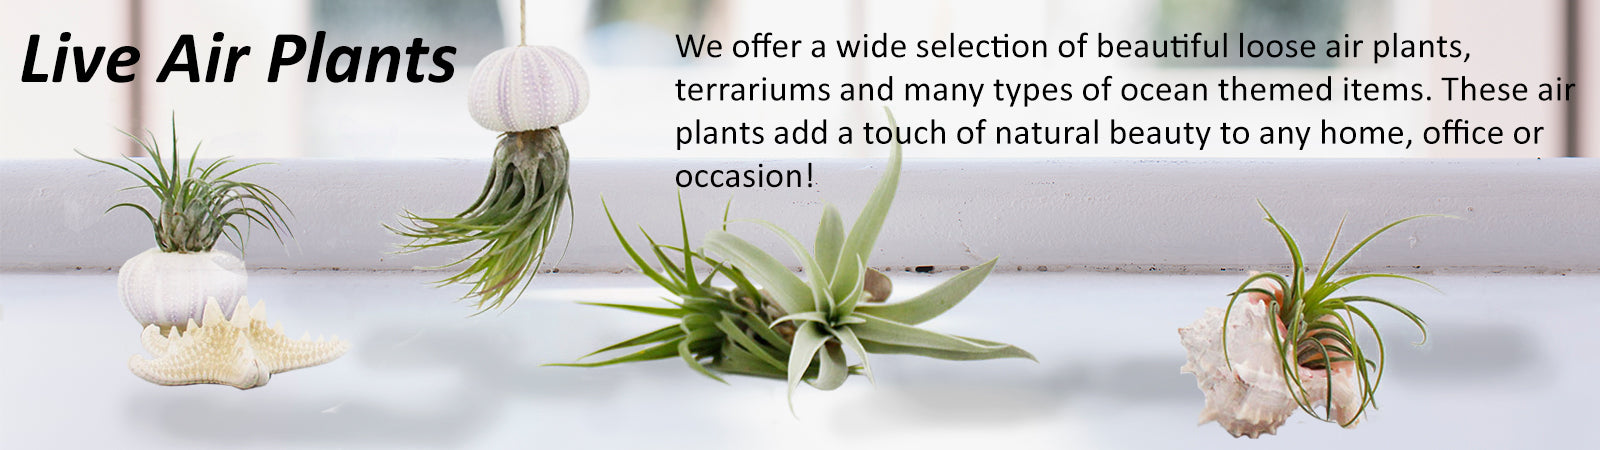 Small Indoor Live Air Plants Live Air Plants For Sale